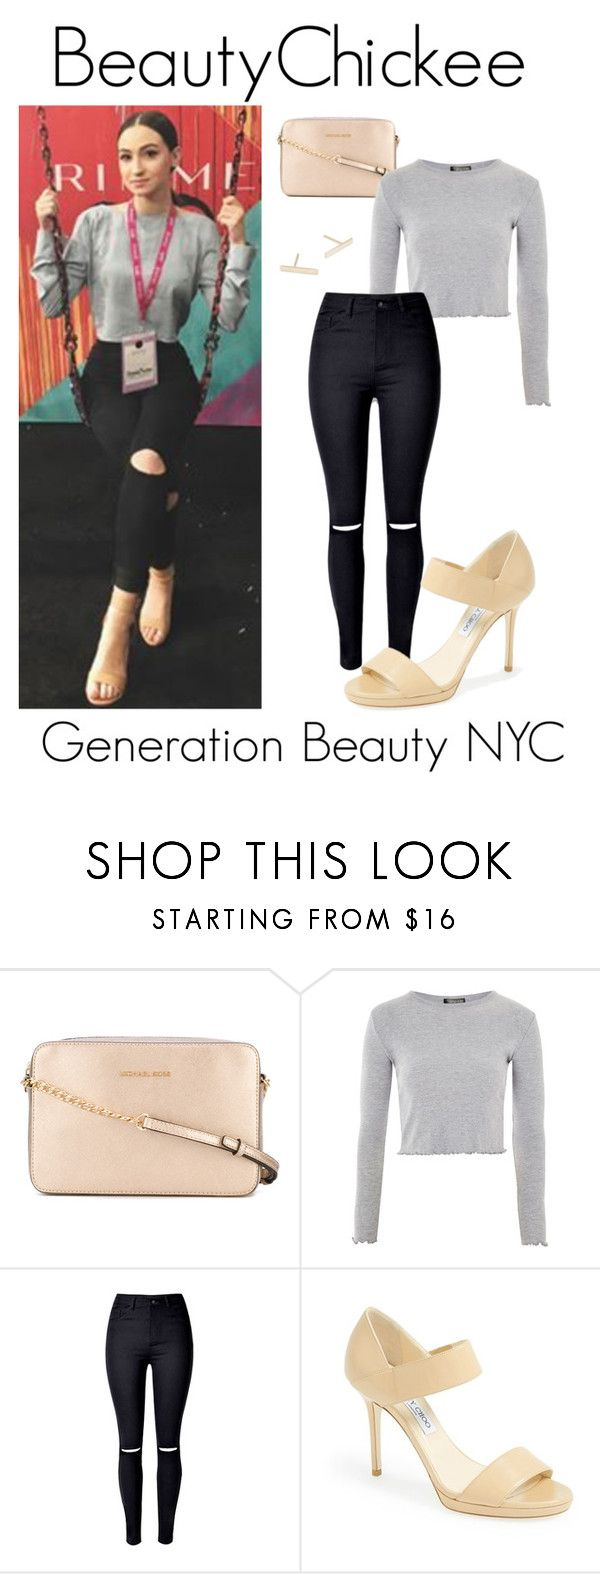 230 best Beauty Chickee images on Pinterest | Beauty, Beleza and ...